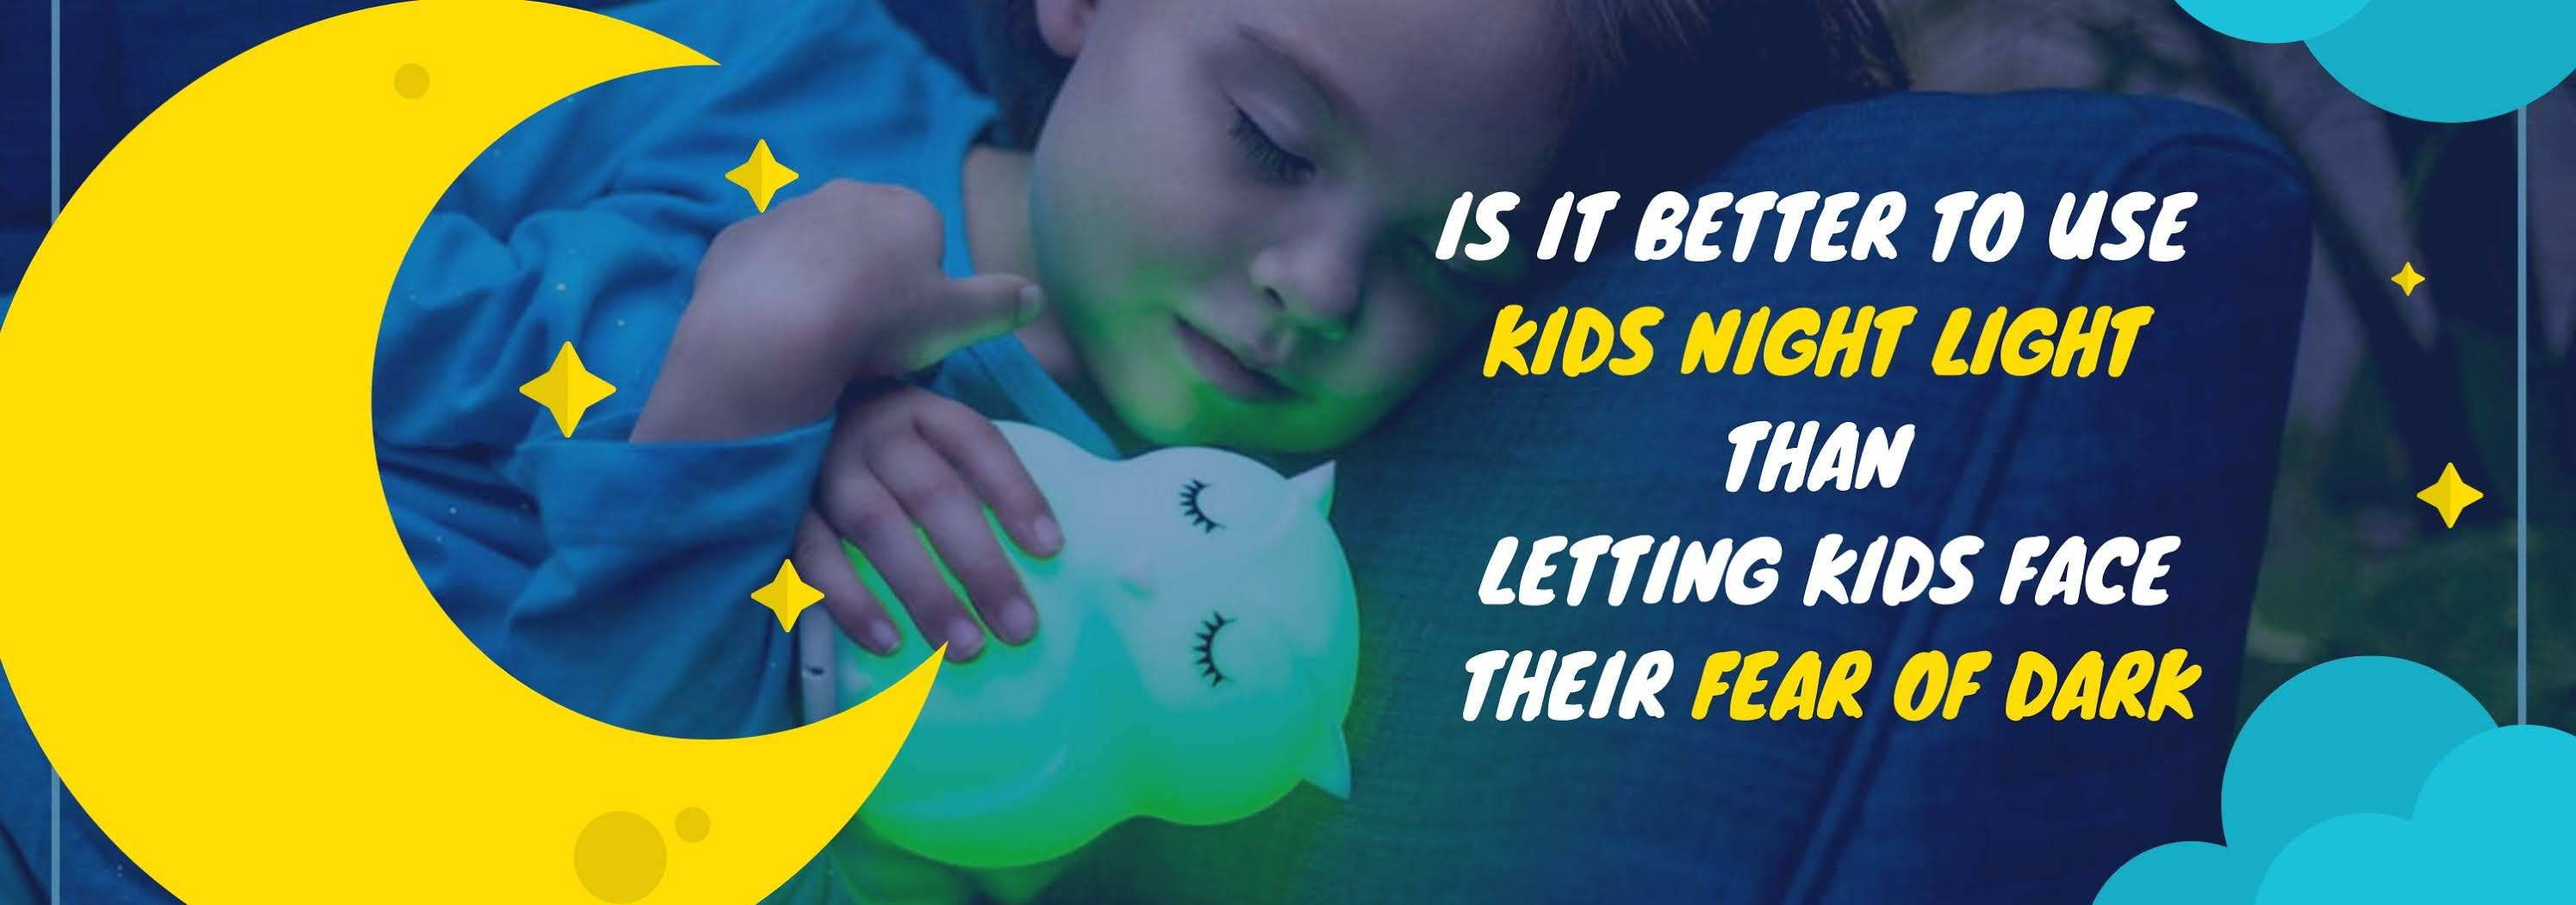 better to use Kids Night Light than letting kids face their fear of the dark